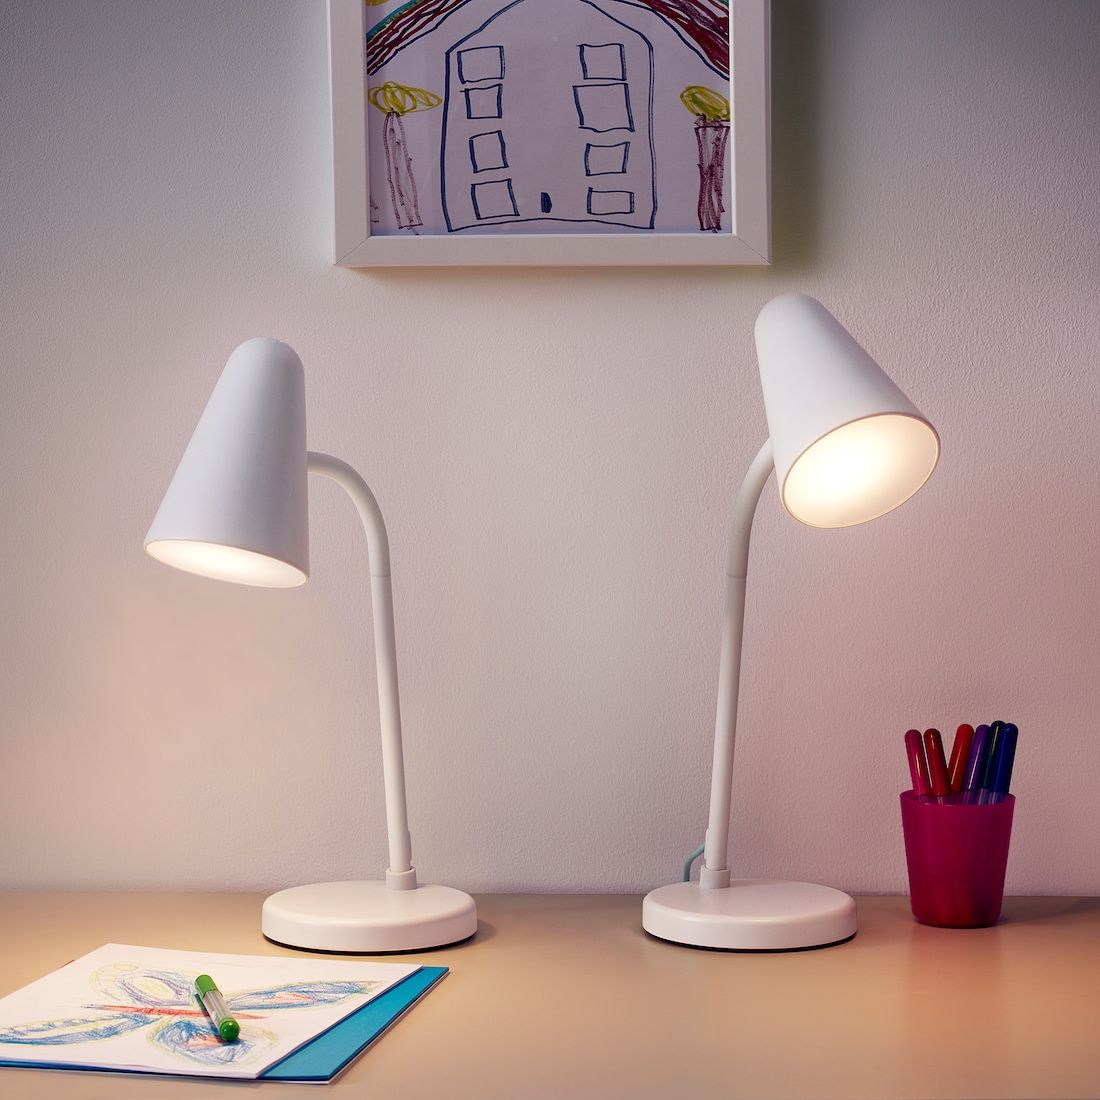 Fubbla Led Work Lamp White Ikea In 2020 Lamp Work Lamp Led Light Bulb